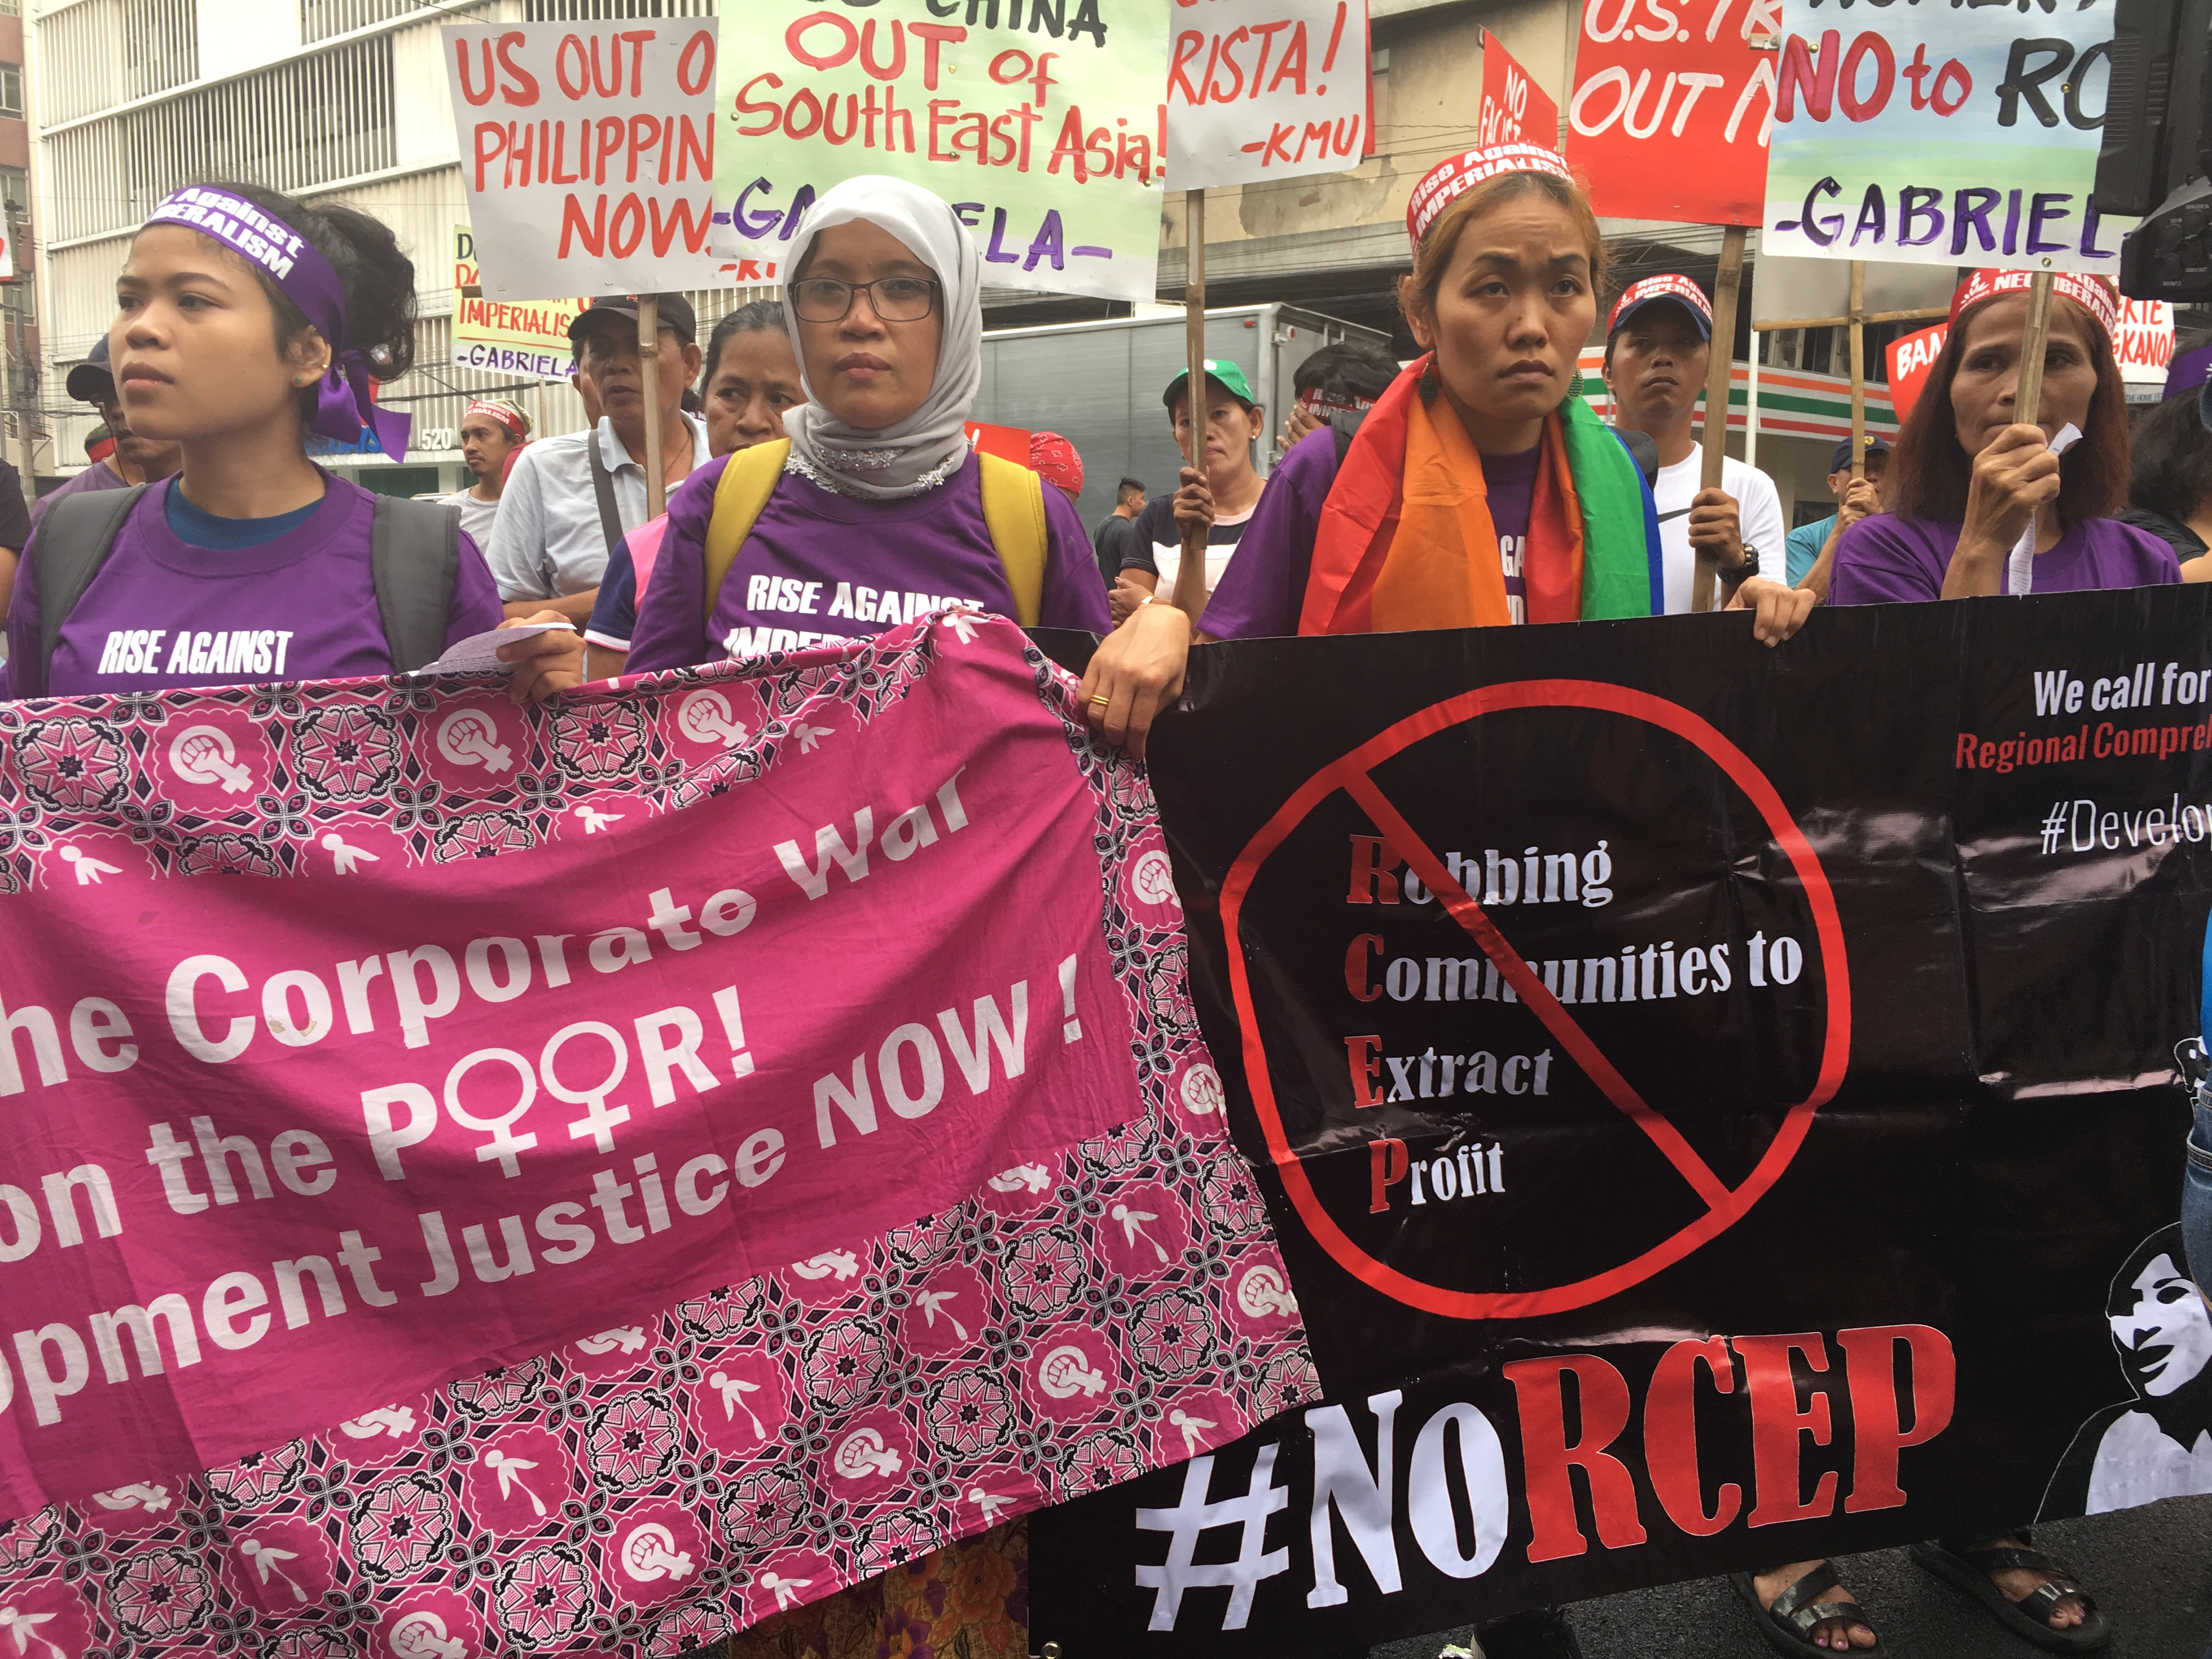 RCEP Has Human Rights Concerns: Women's Groups